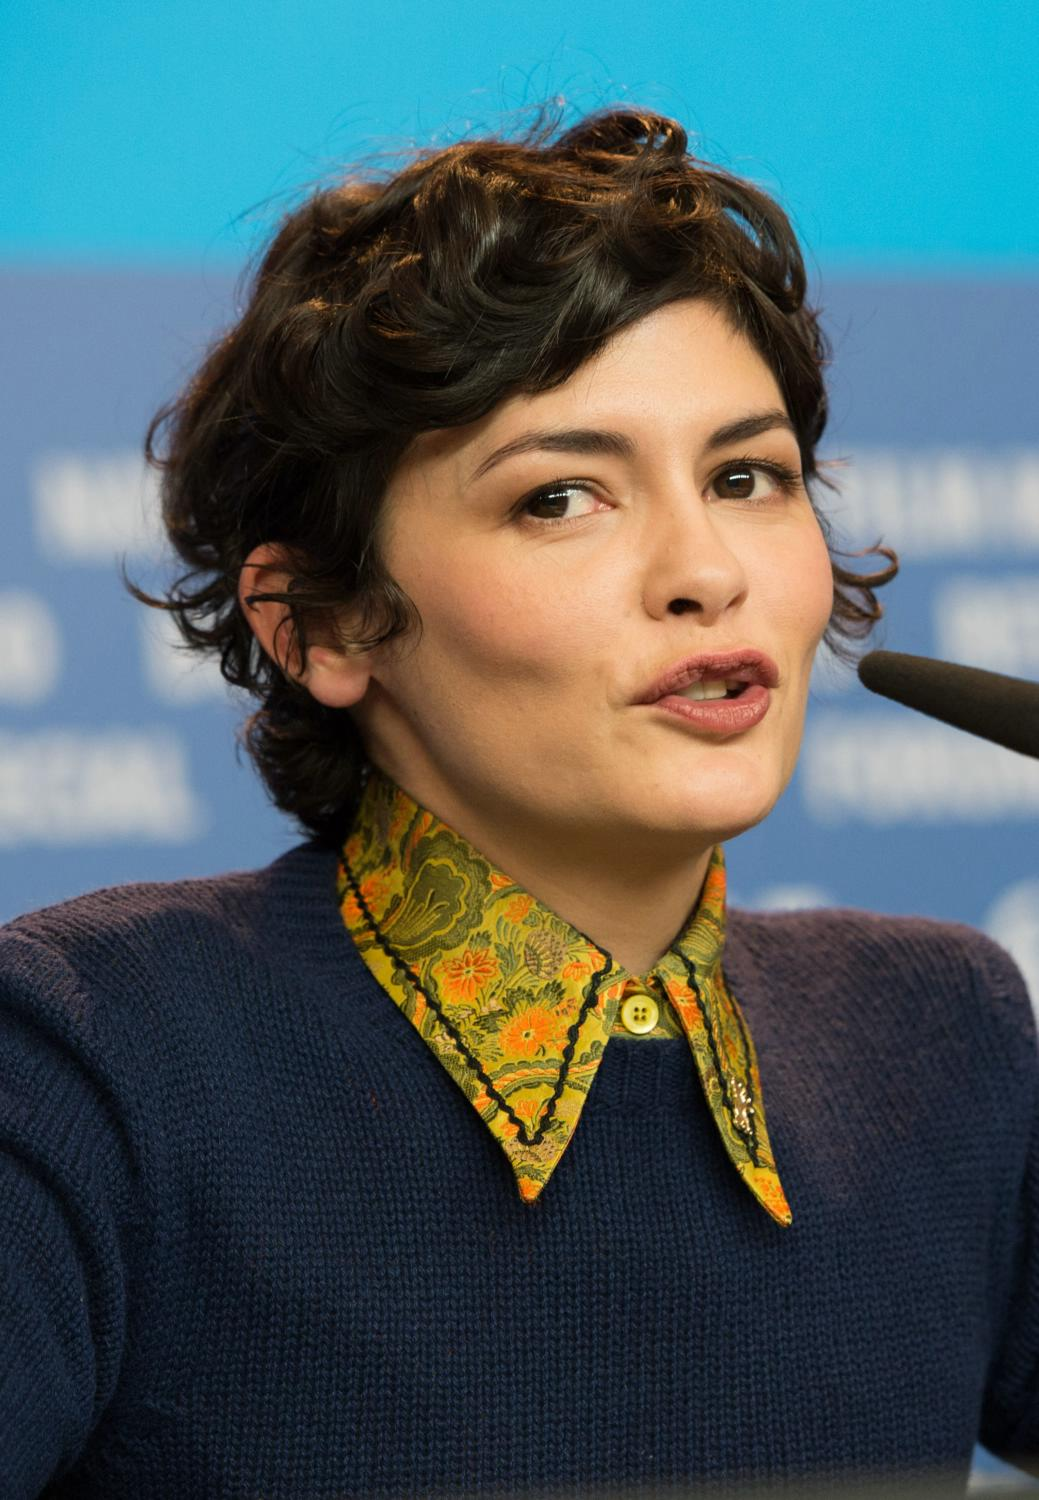 Audrey Tautou photo #639172